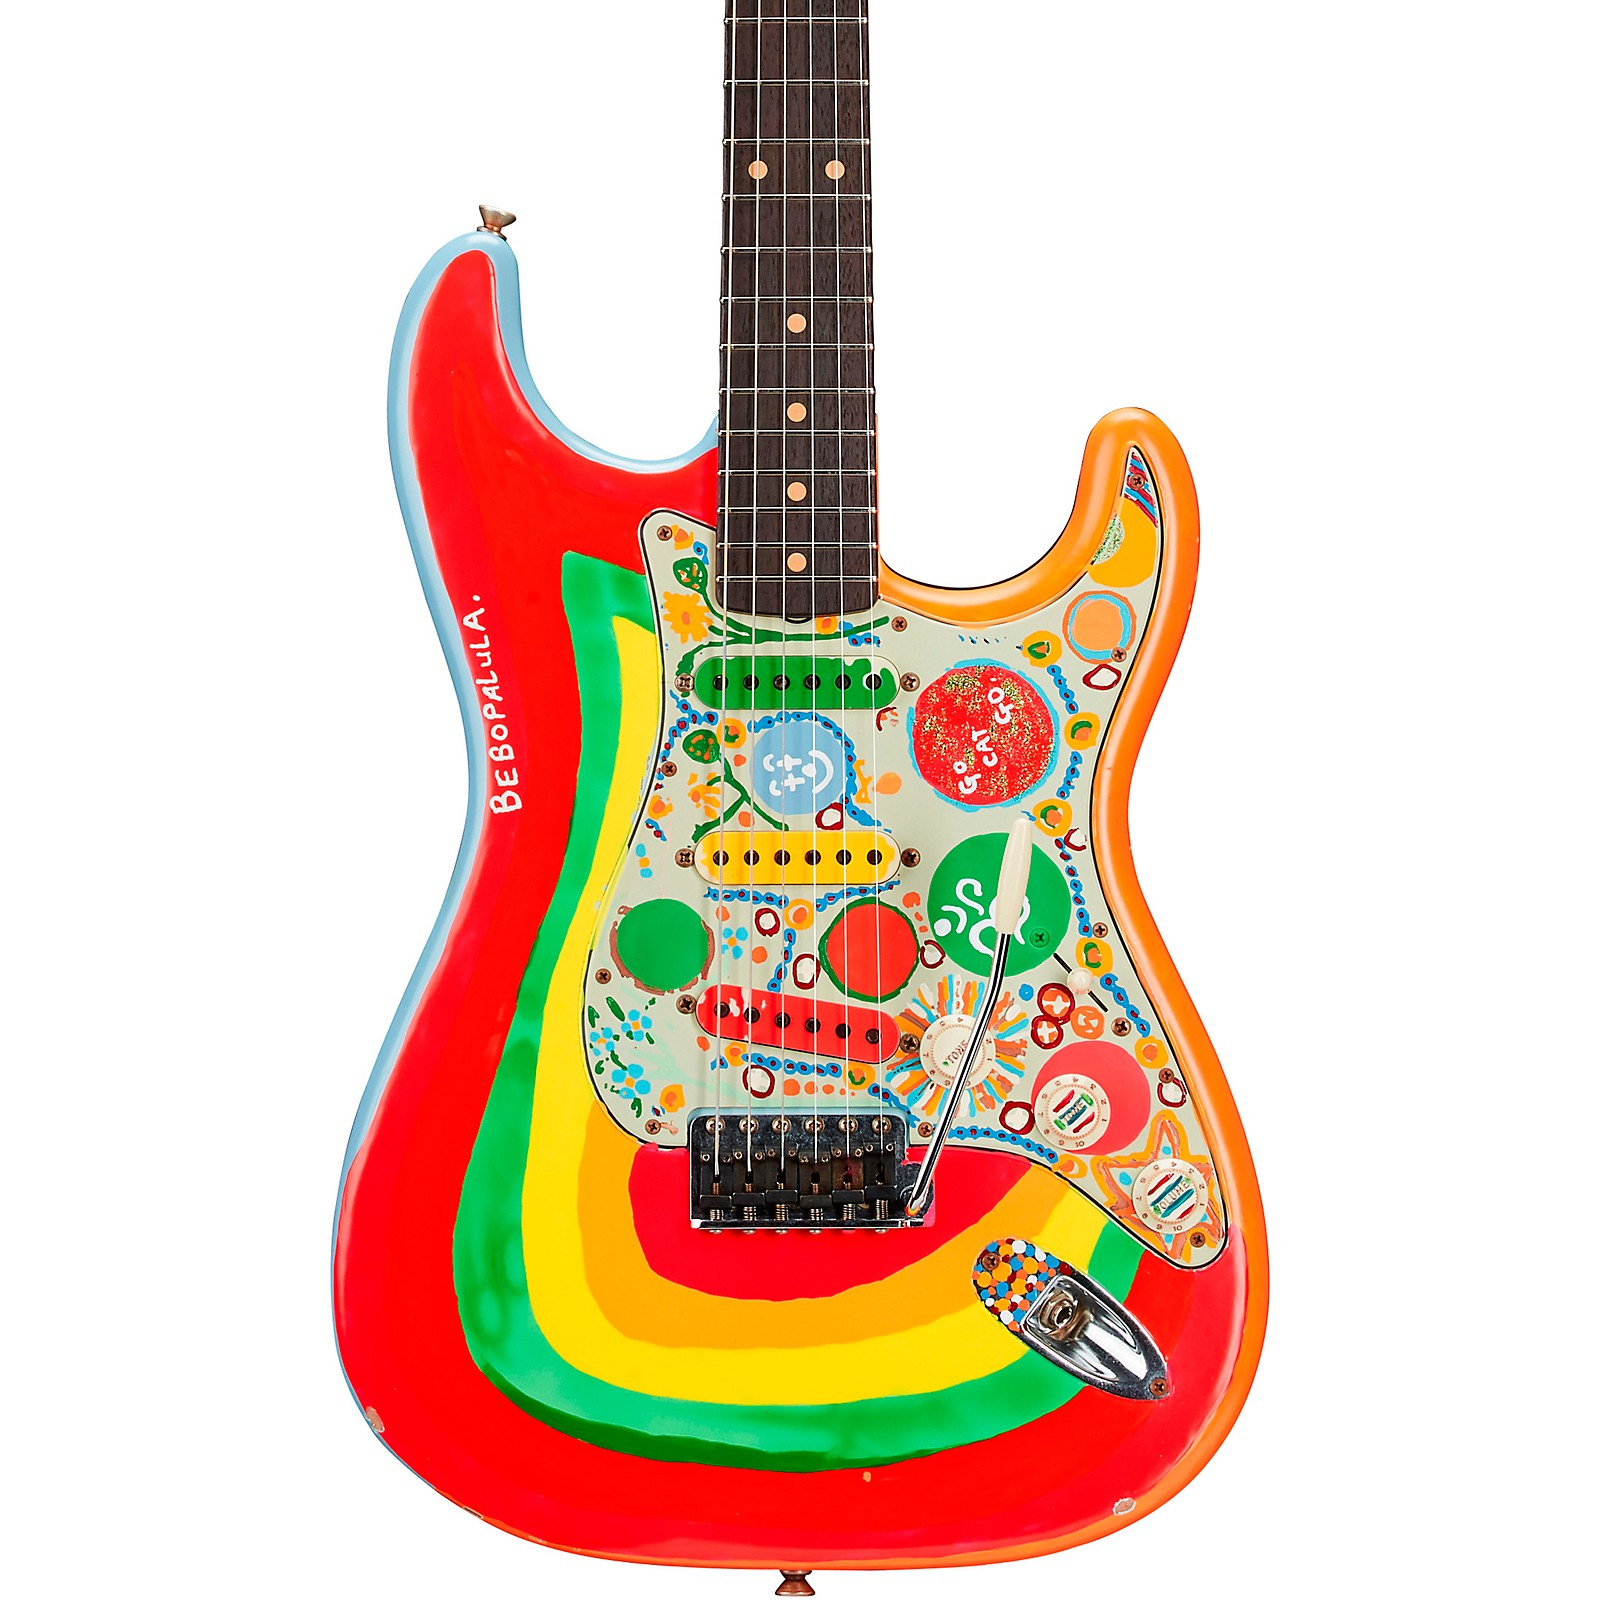 Fender Custom Shop Limited-Edition George Harrison Rocky Stratocaster Electric Guitar